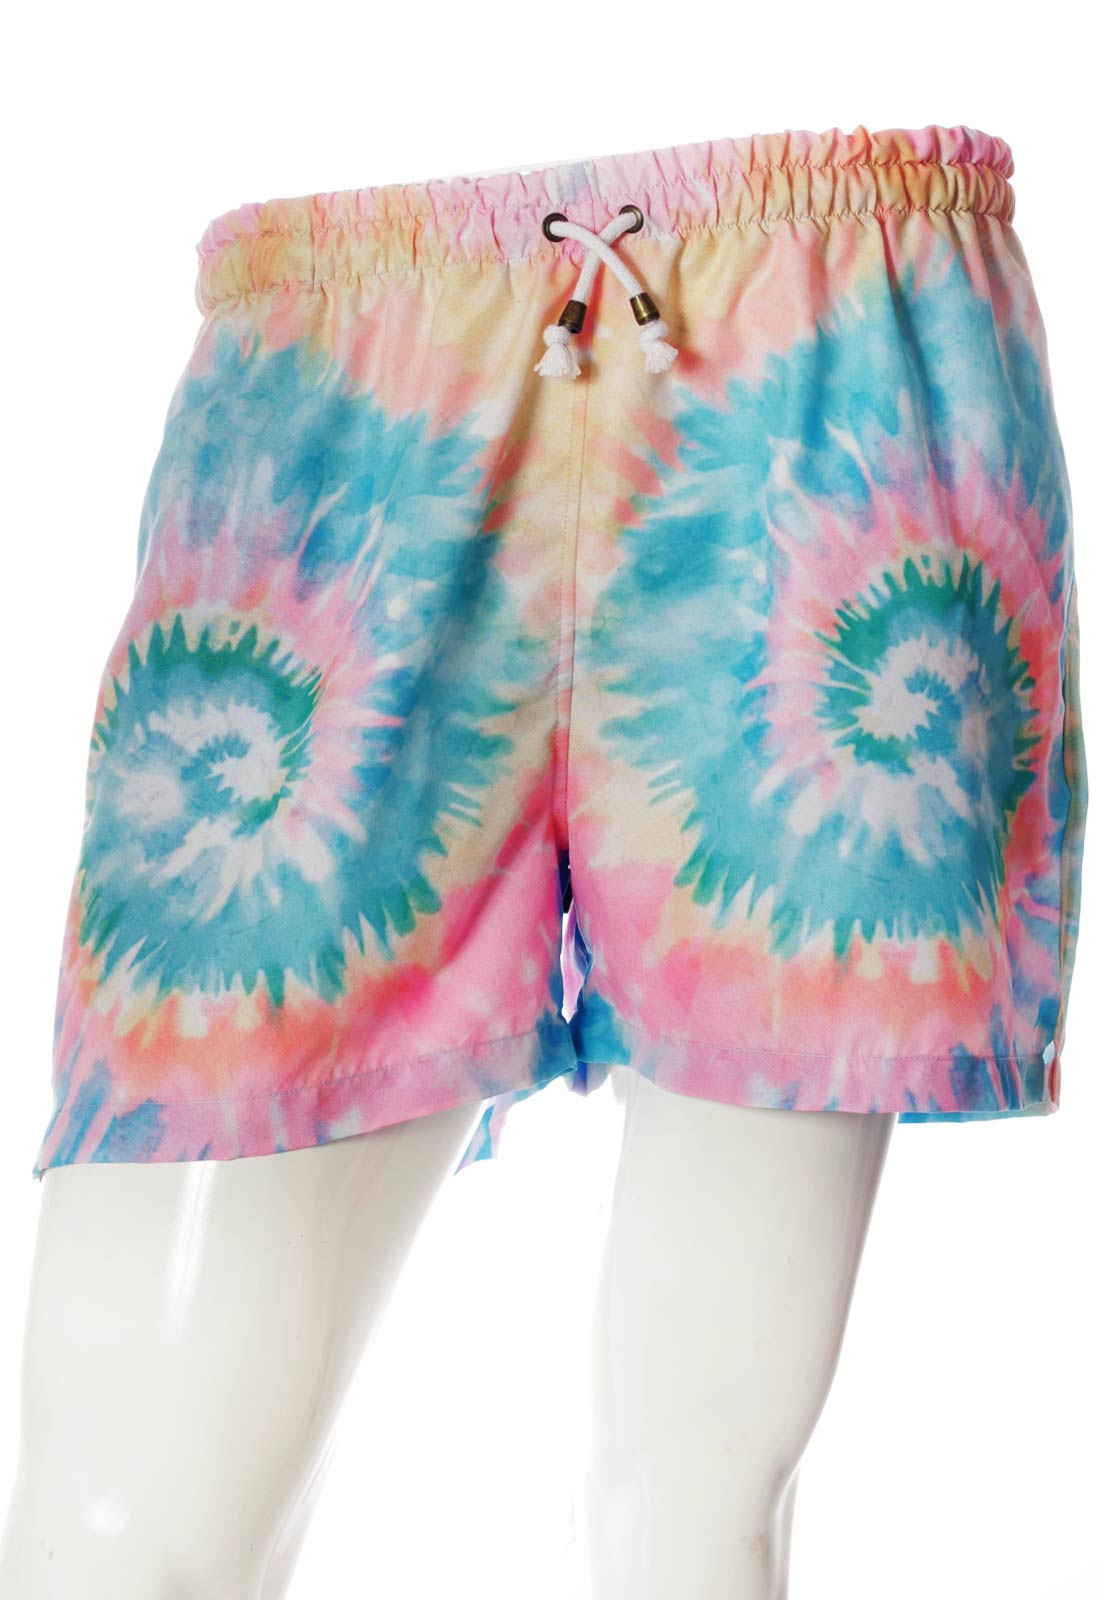 SHORTS TIE DYE ESTAMPADO COLORFULL PRINT UNISSEX